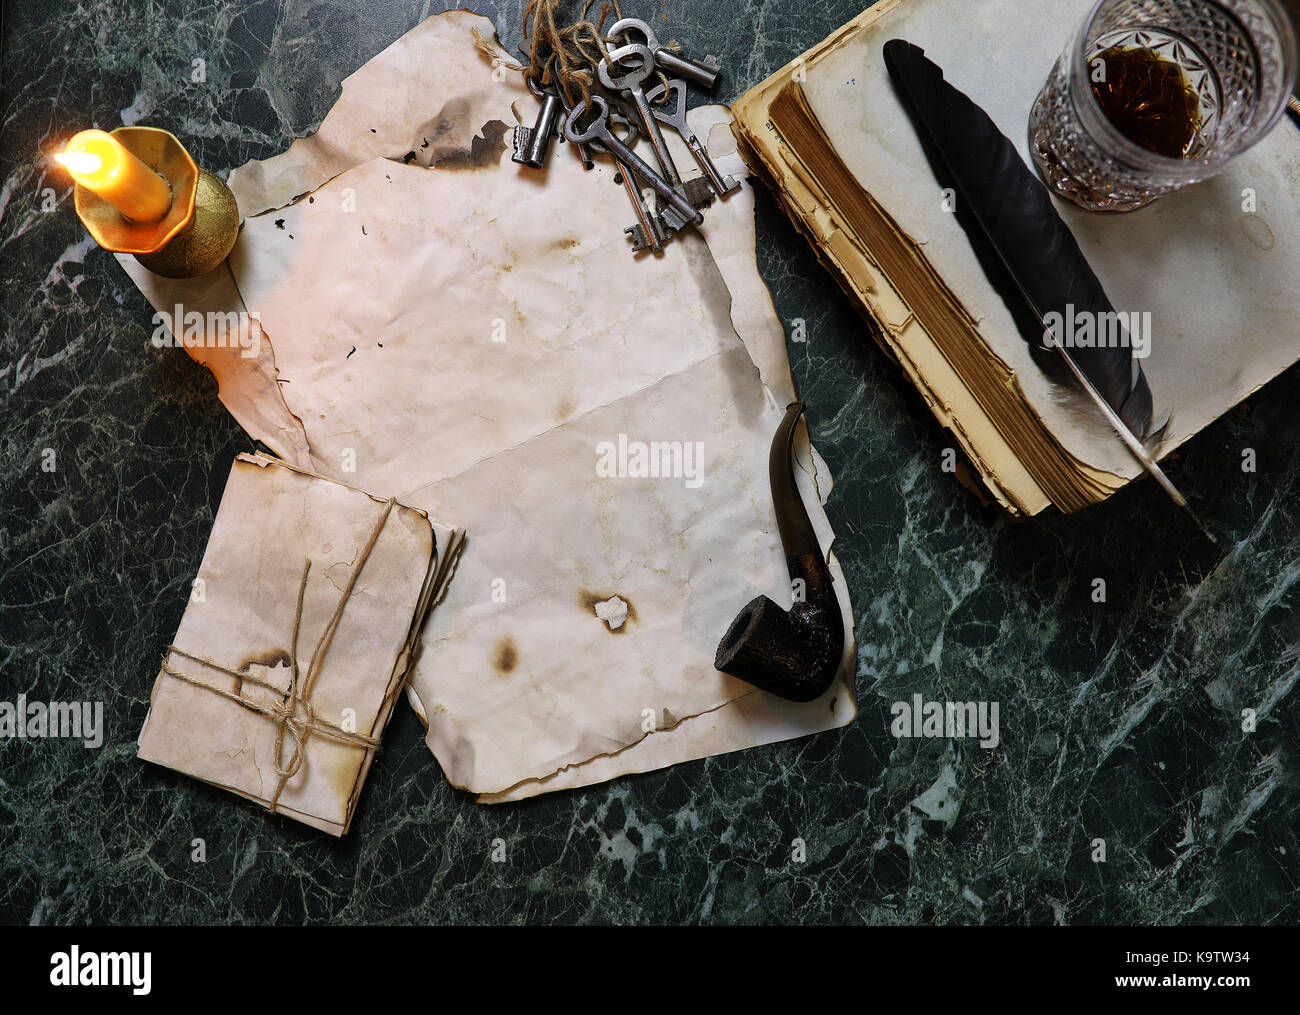 retro papers and book on table with detective tools background - Stock Image